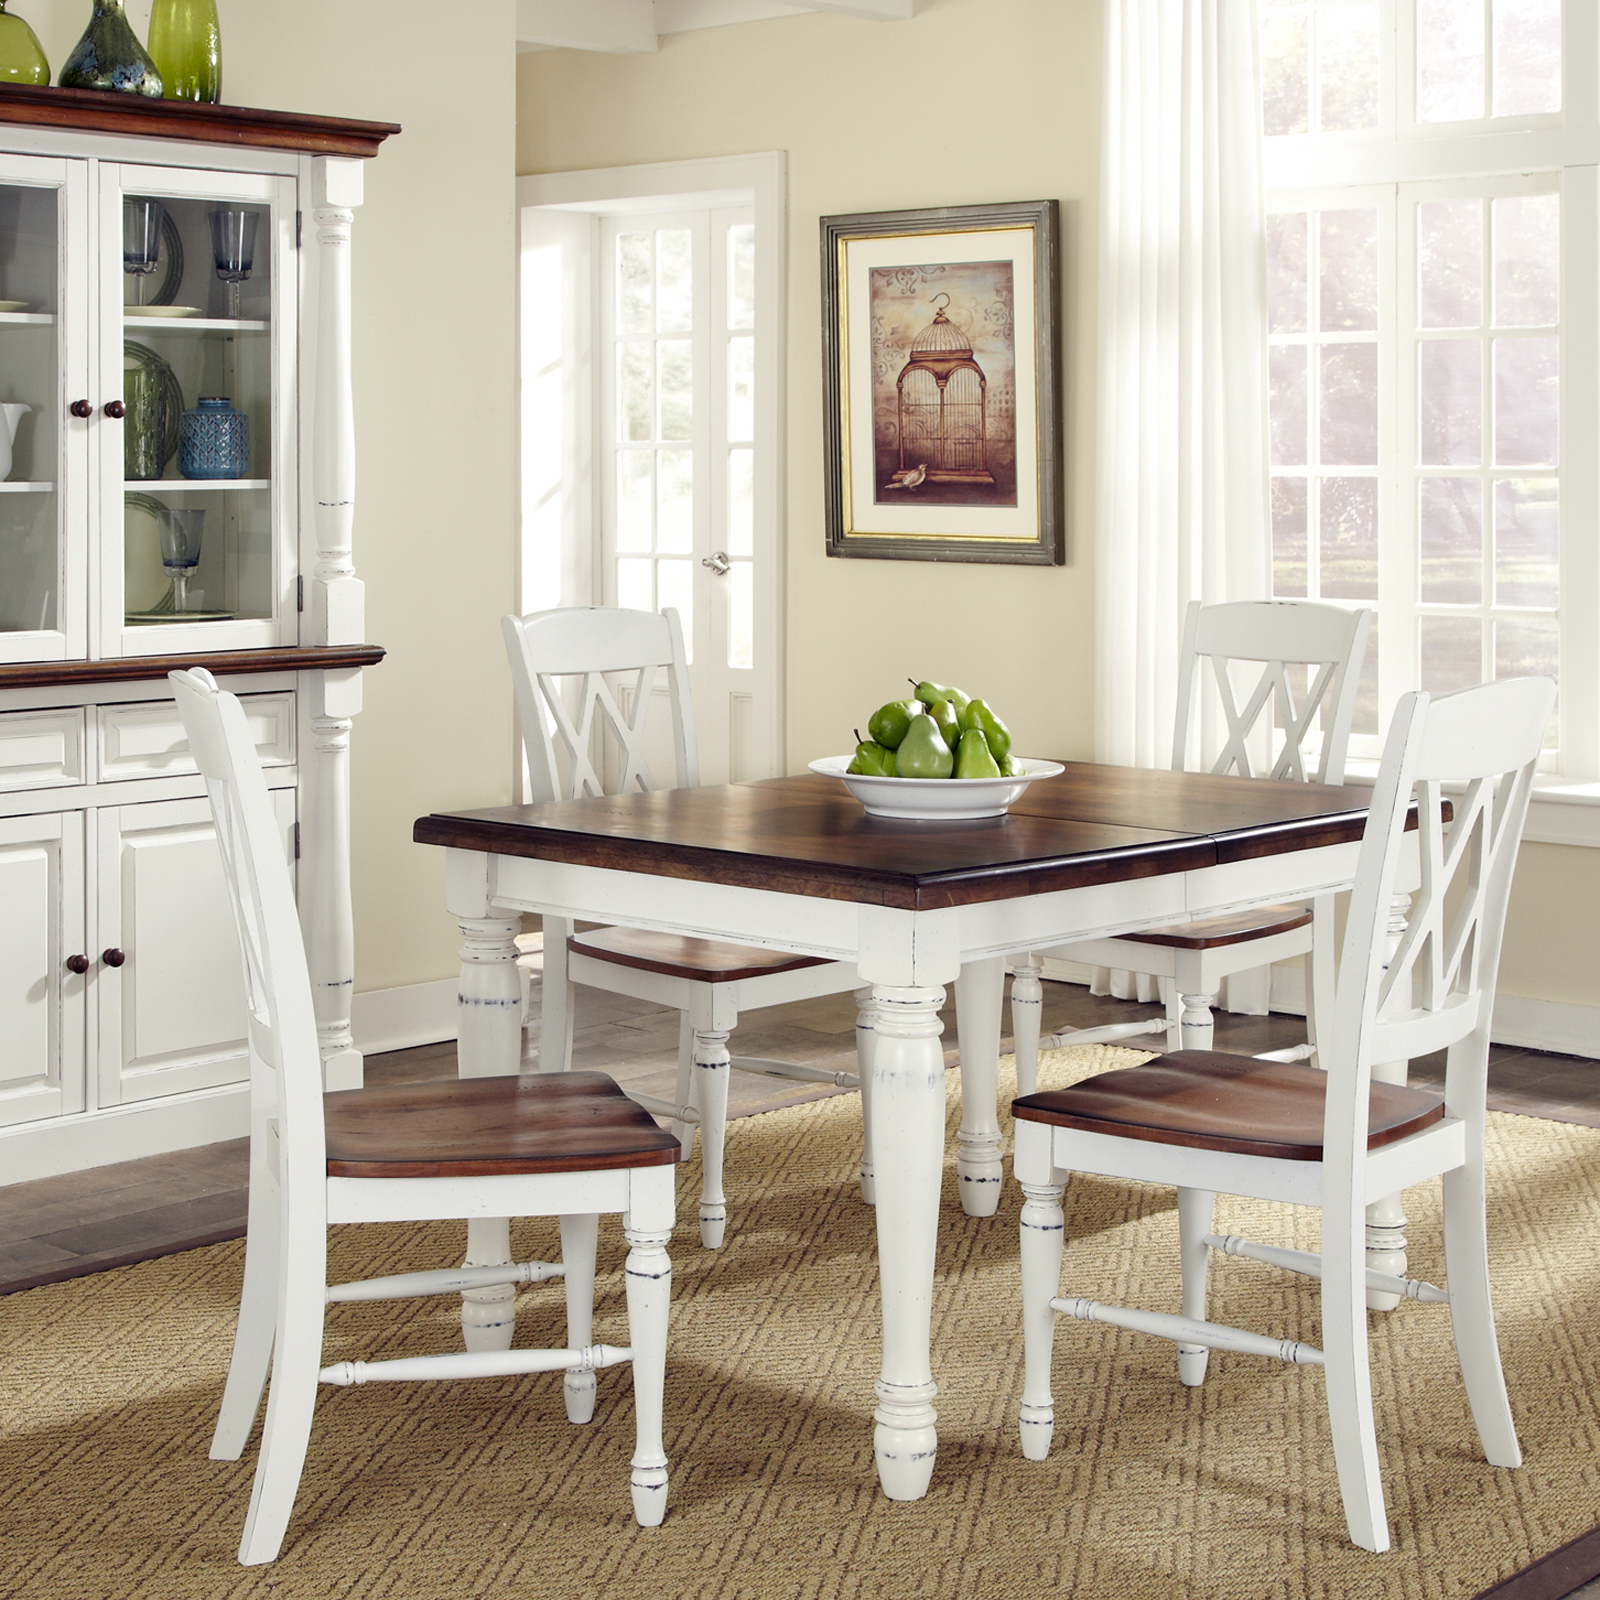 Home Styles Monarch 5 Piece Dining Table with 4 Double X Back Chairs   White    Oak   Hayneedle. Home Styles Monarch 5 Piece Dining Table with 4 Double X Back